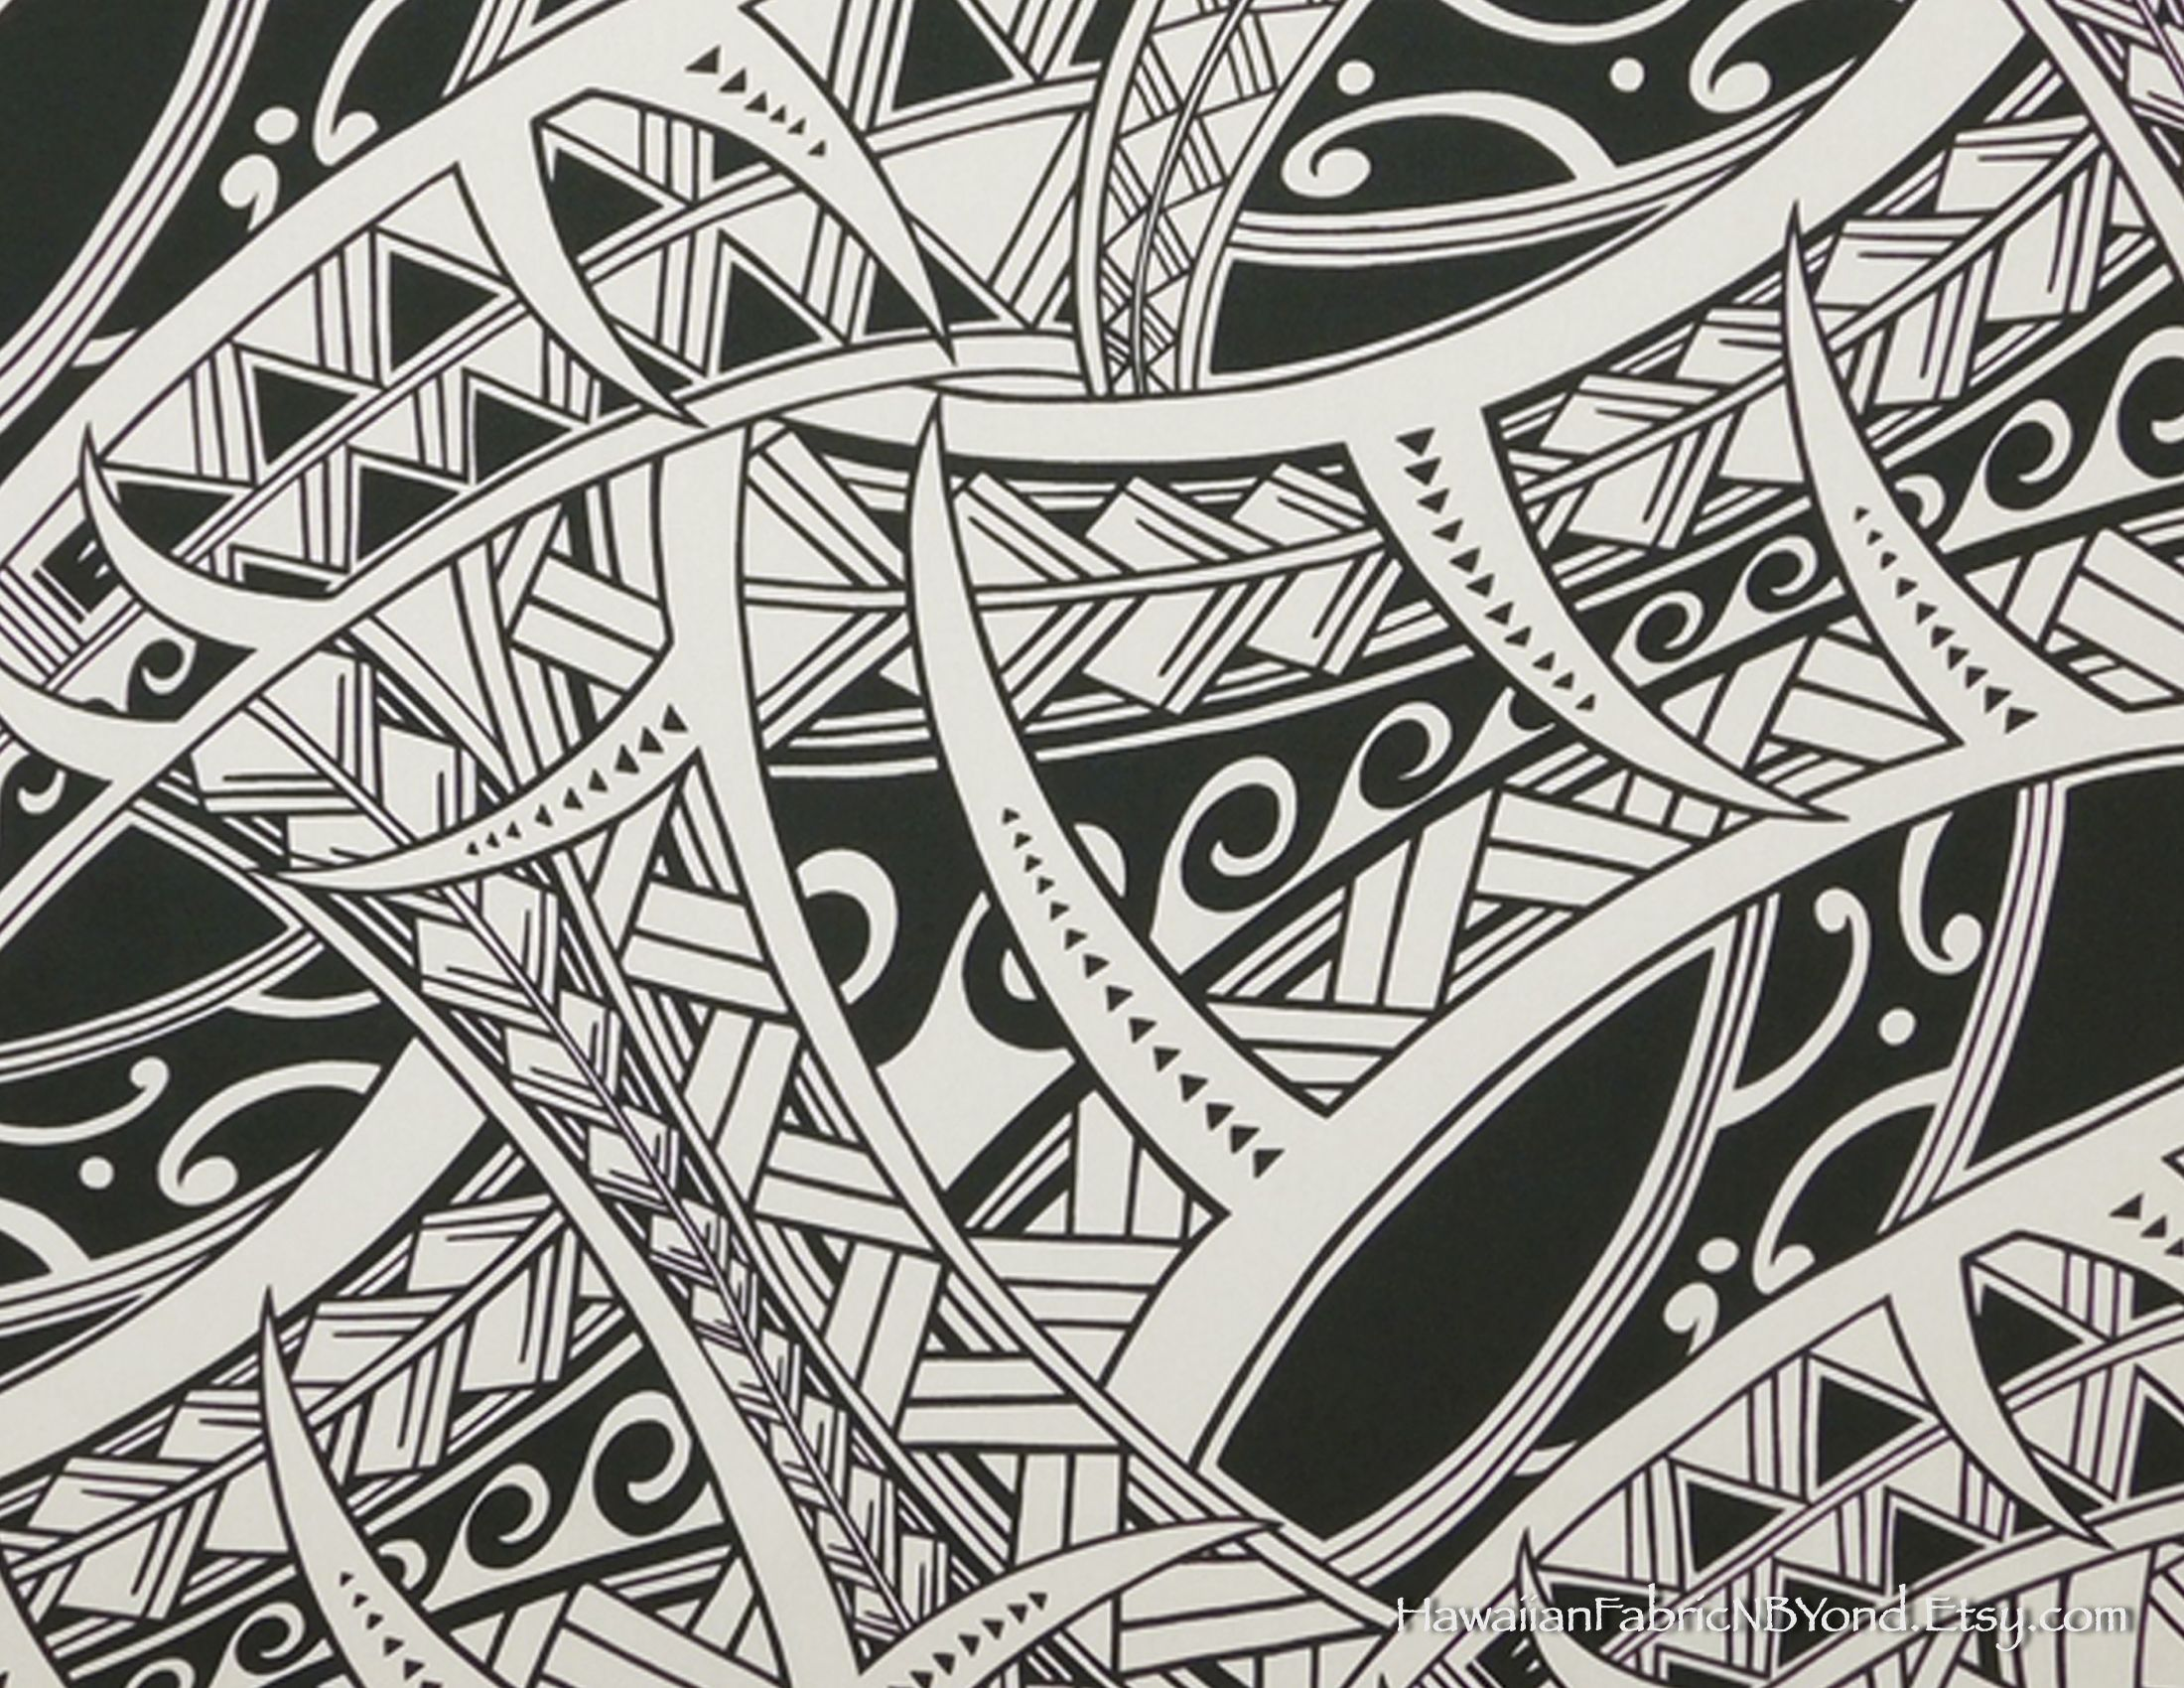 a3696ced TATTOO Fabric: Polynesian tribal tattoo, tapa patterns. One of the best for  Lavalava, Aloha shirts, and dresses! Check it out at  HawaiianFabricNBYond.etsy. ...